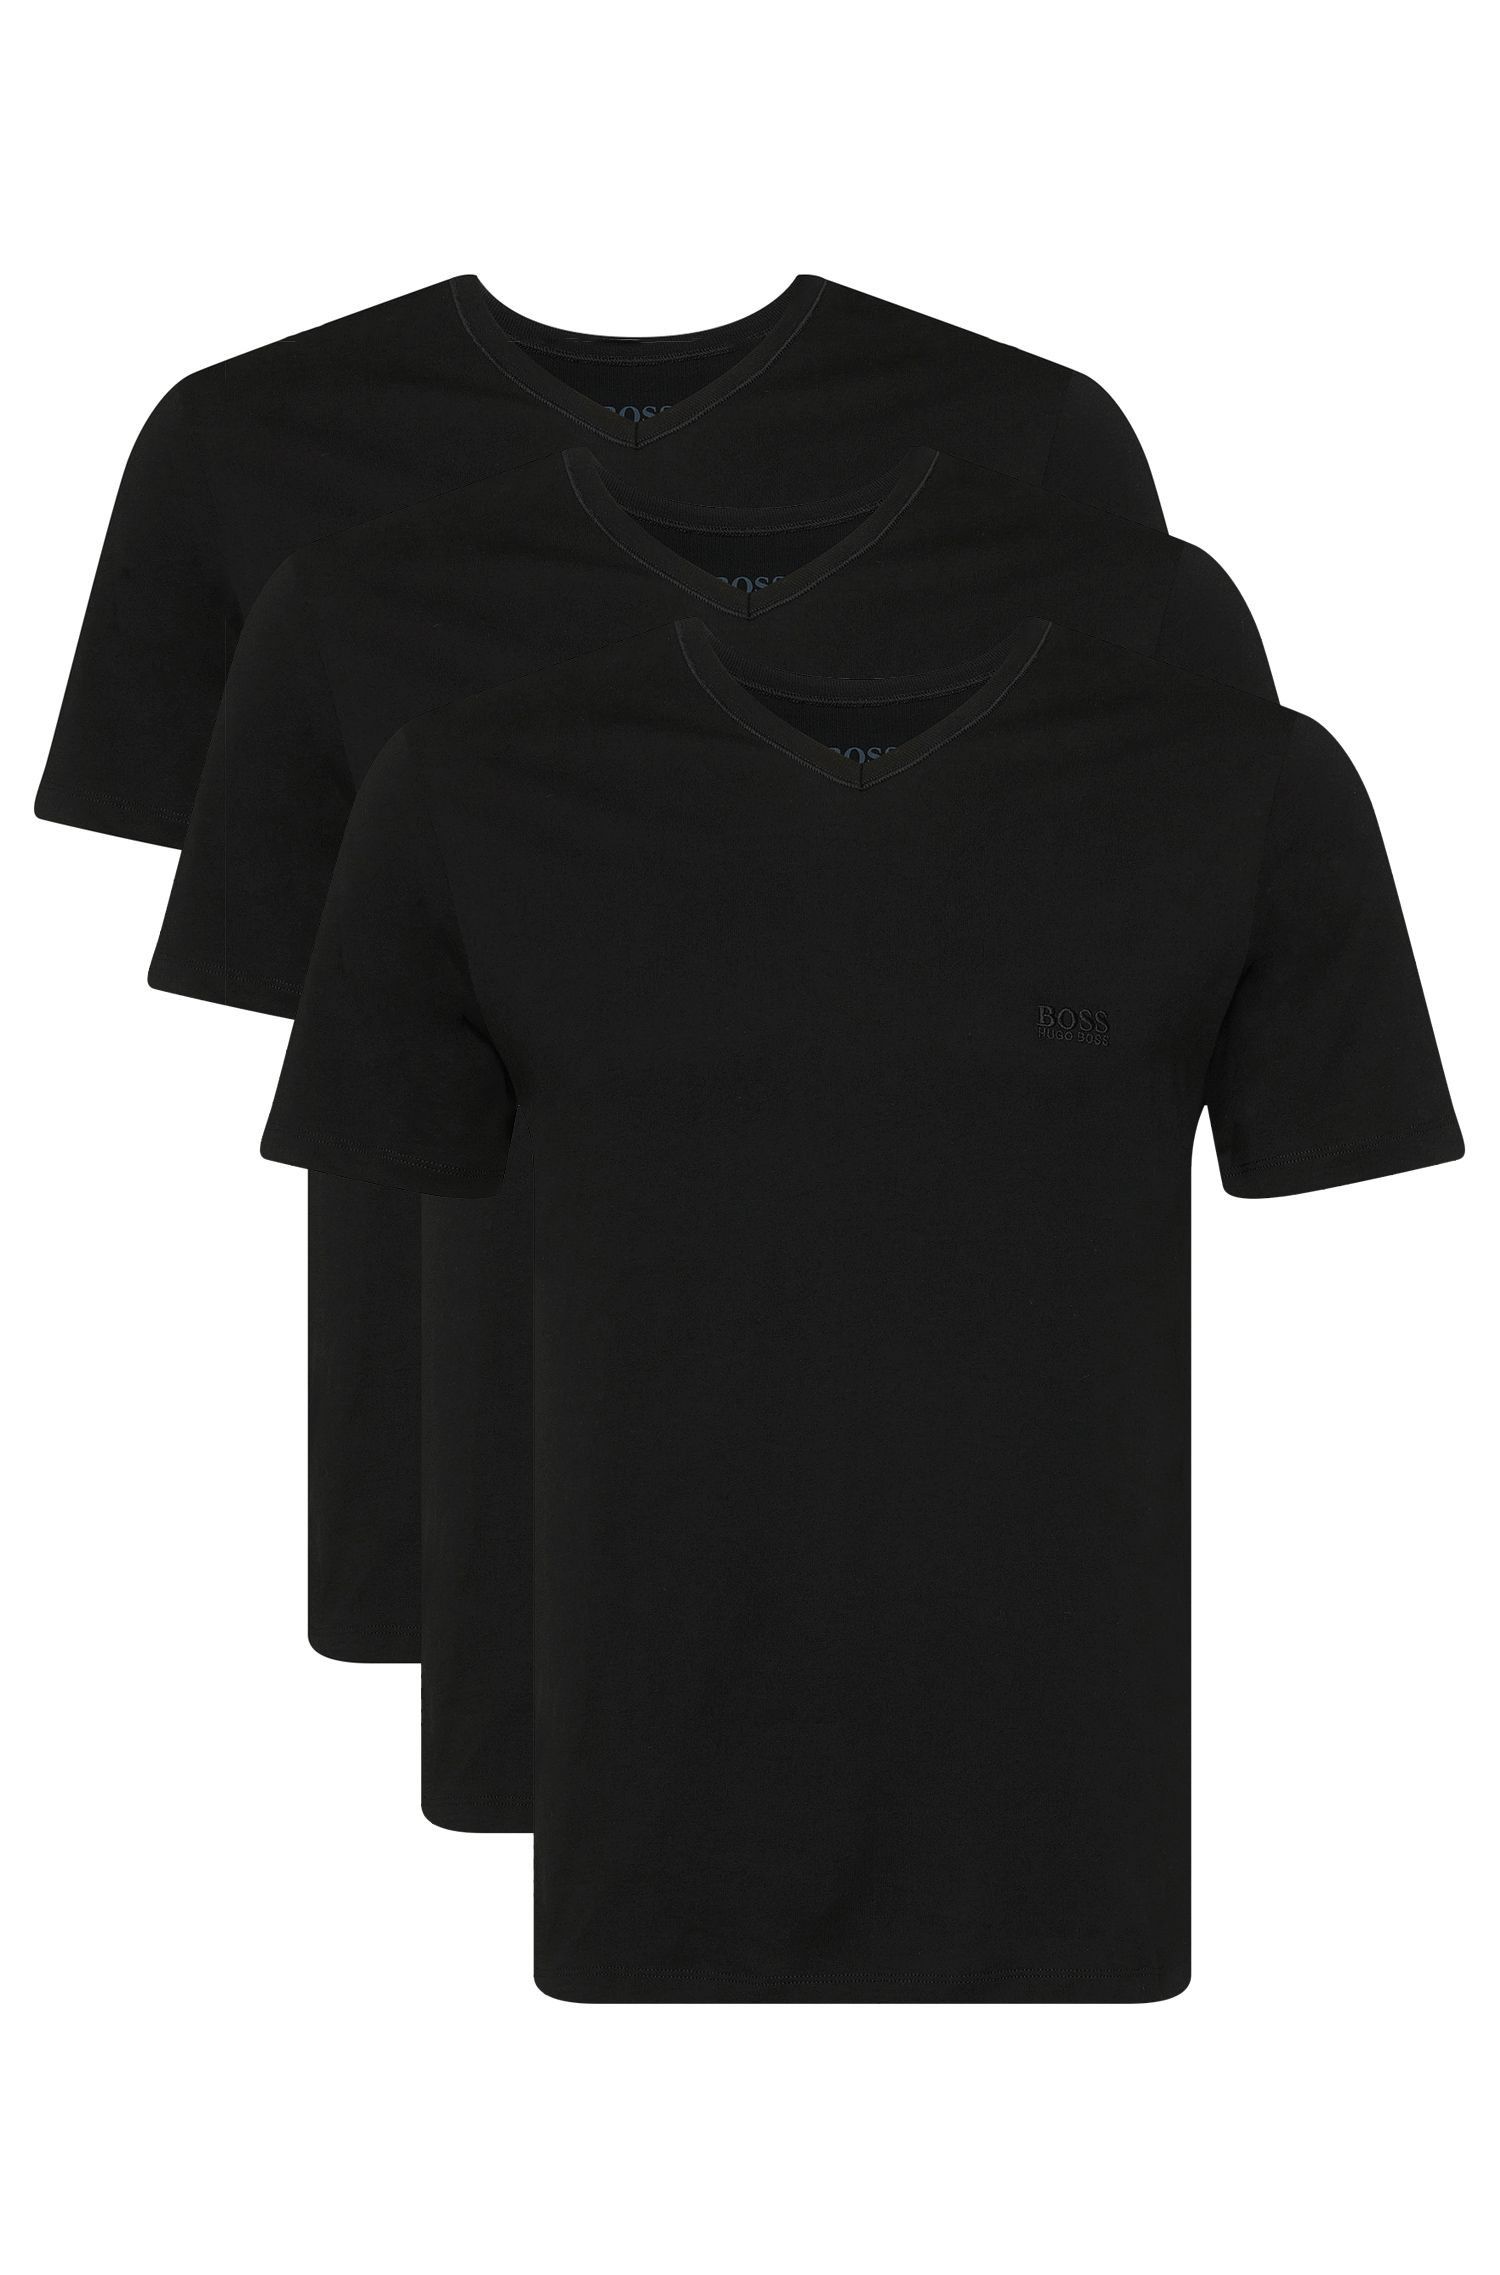 T-shirt triple pack in cotton